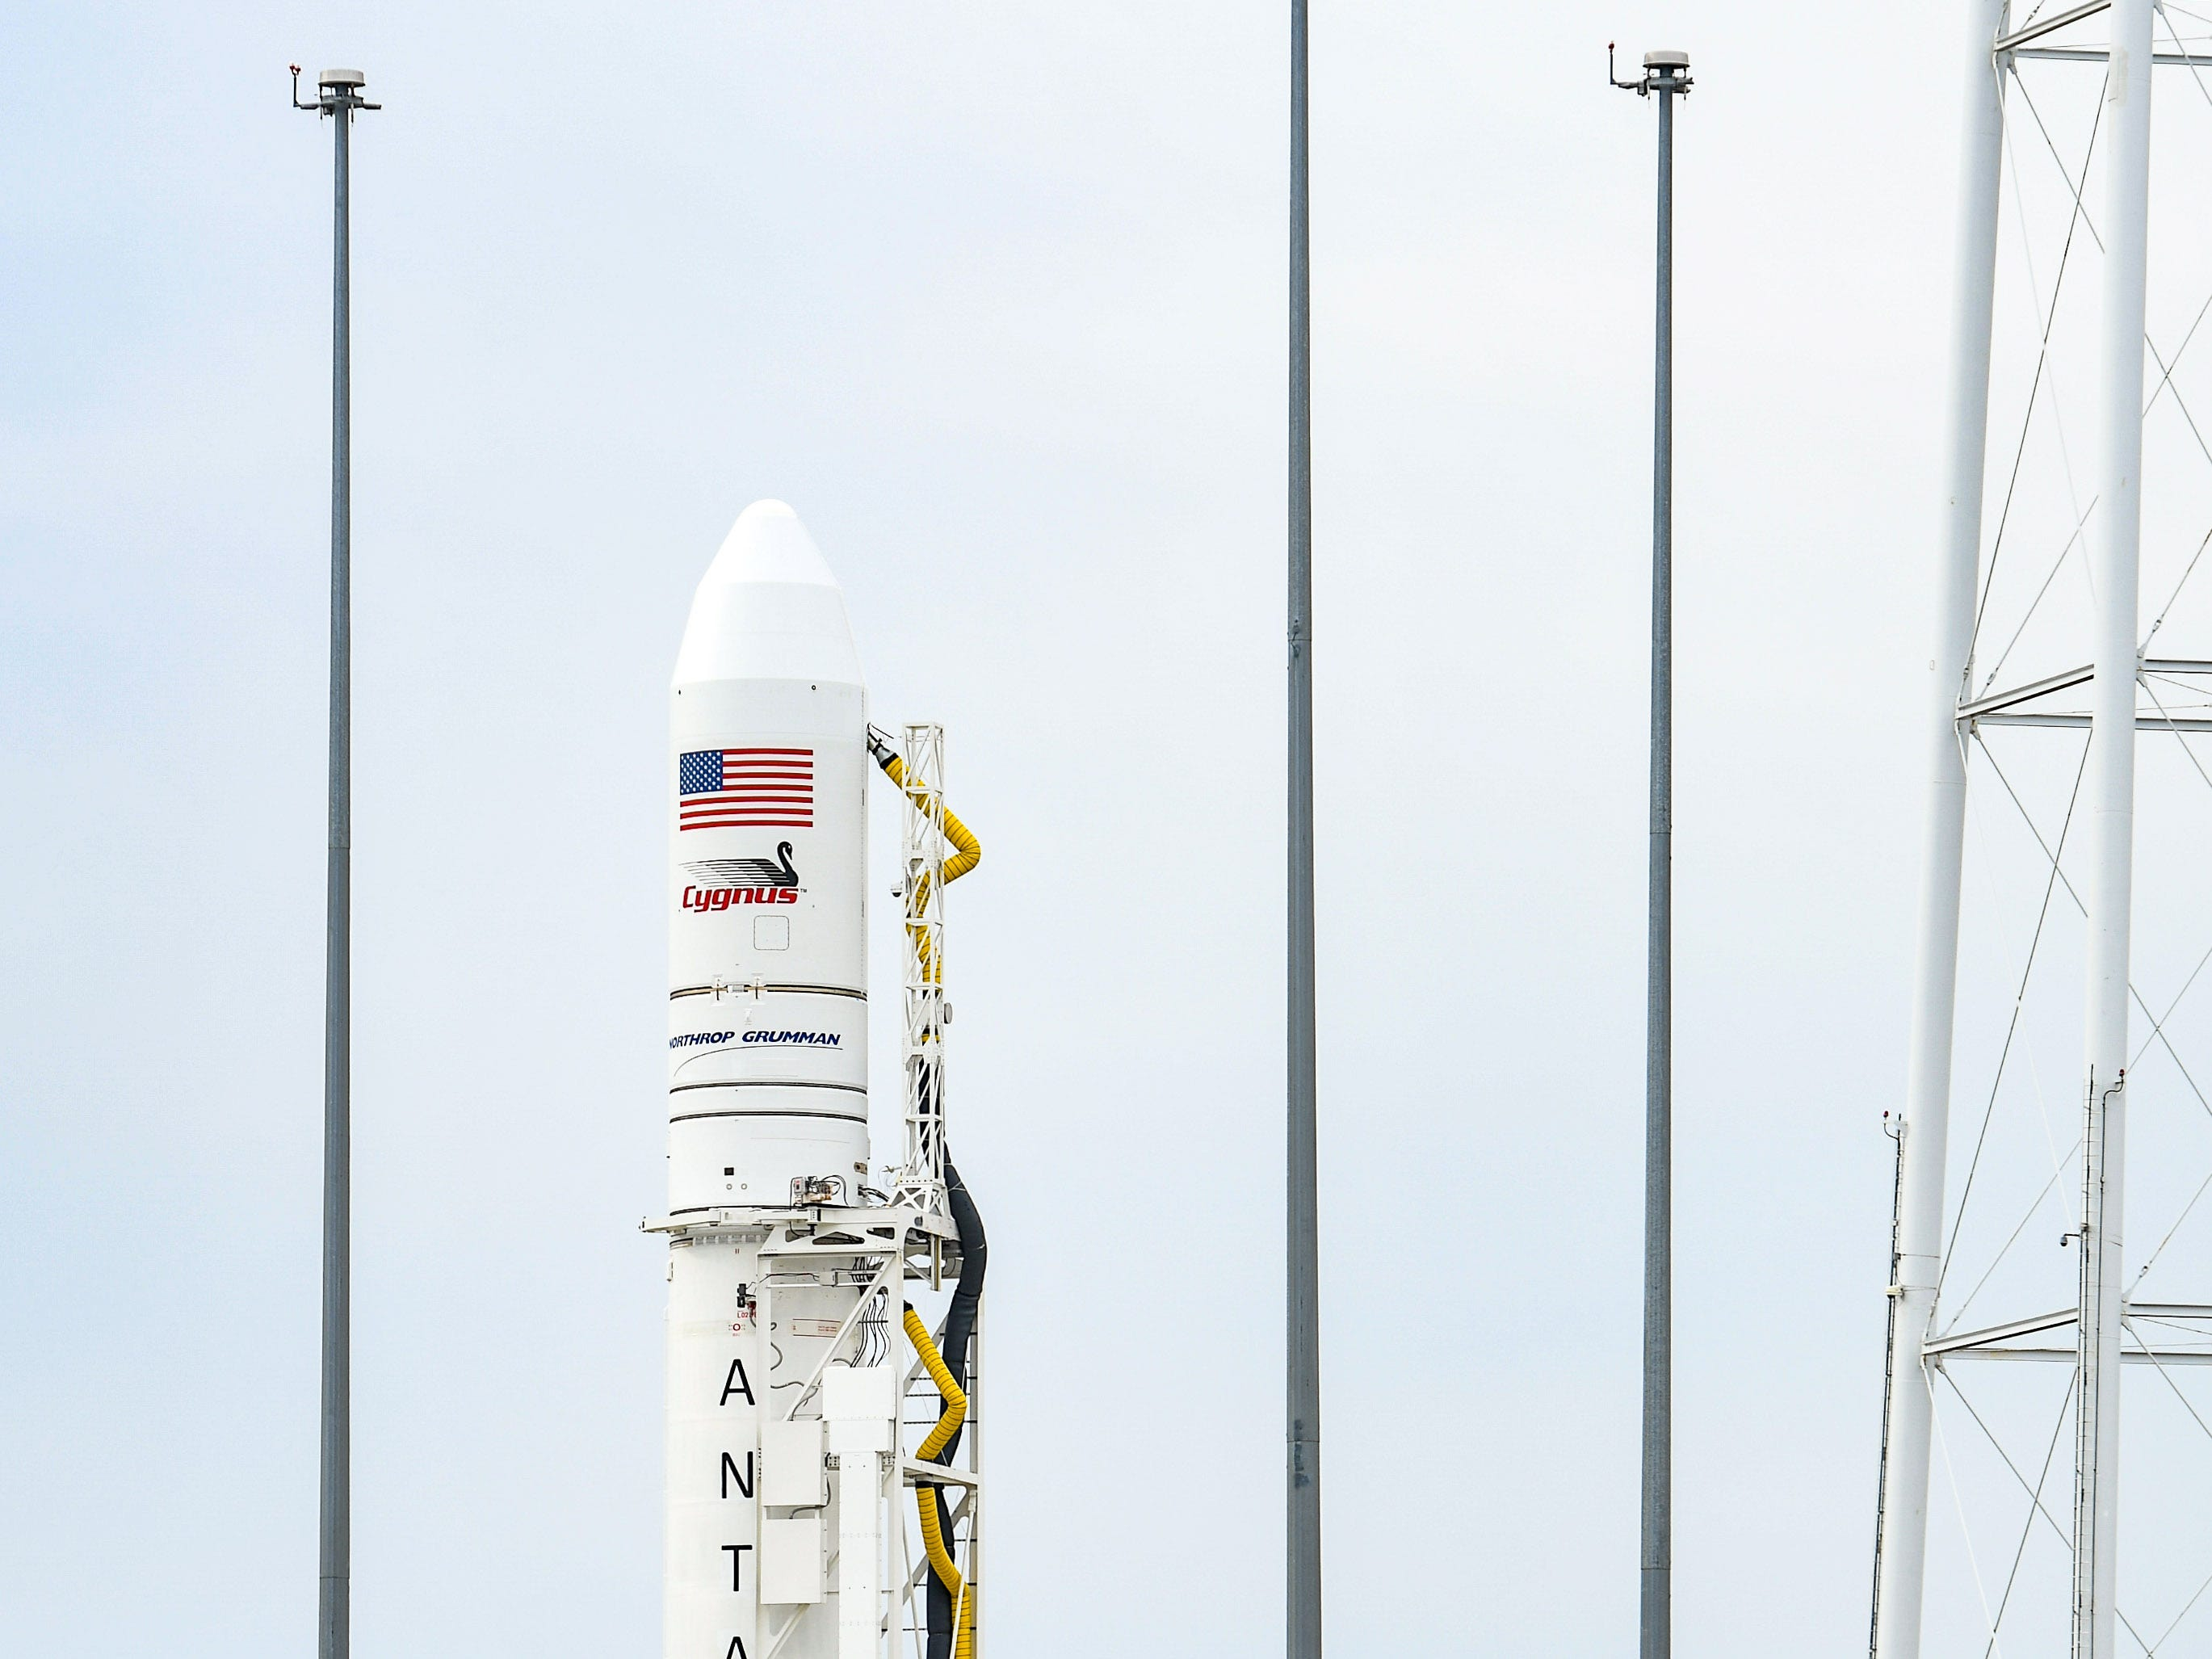 An Antares rocket sits awaiting launch at NASA's Mid-Atlantic Regional Spaceport in Wallops Island, Virginia on Wednesday, Nov 14, 2018.